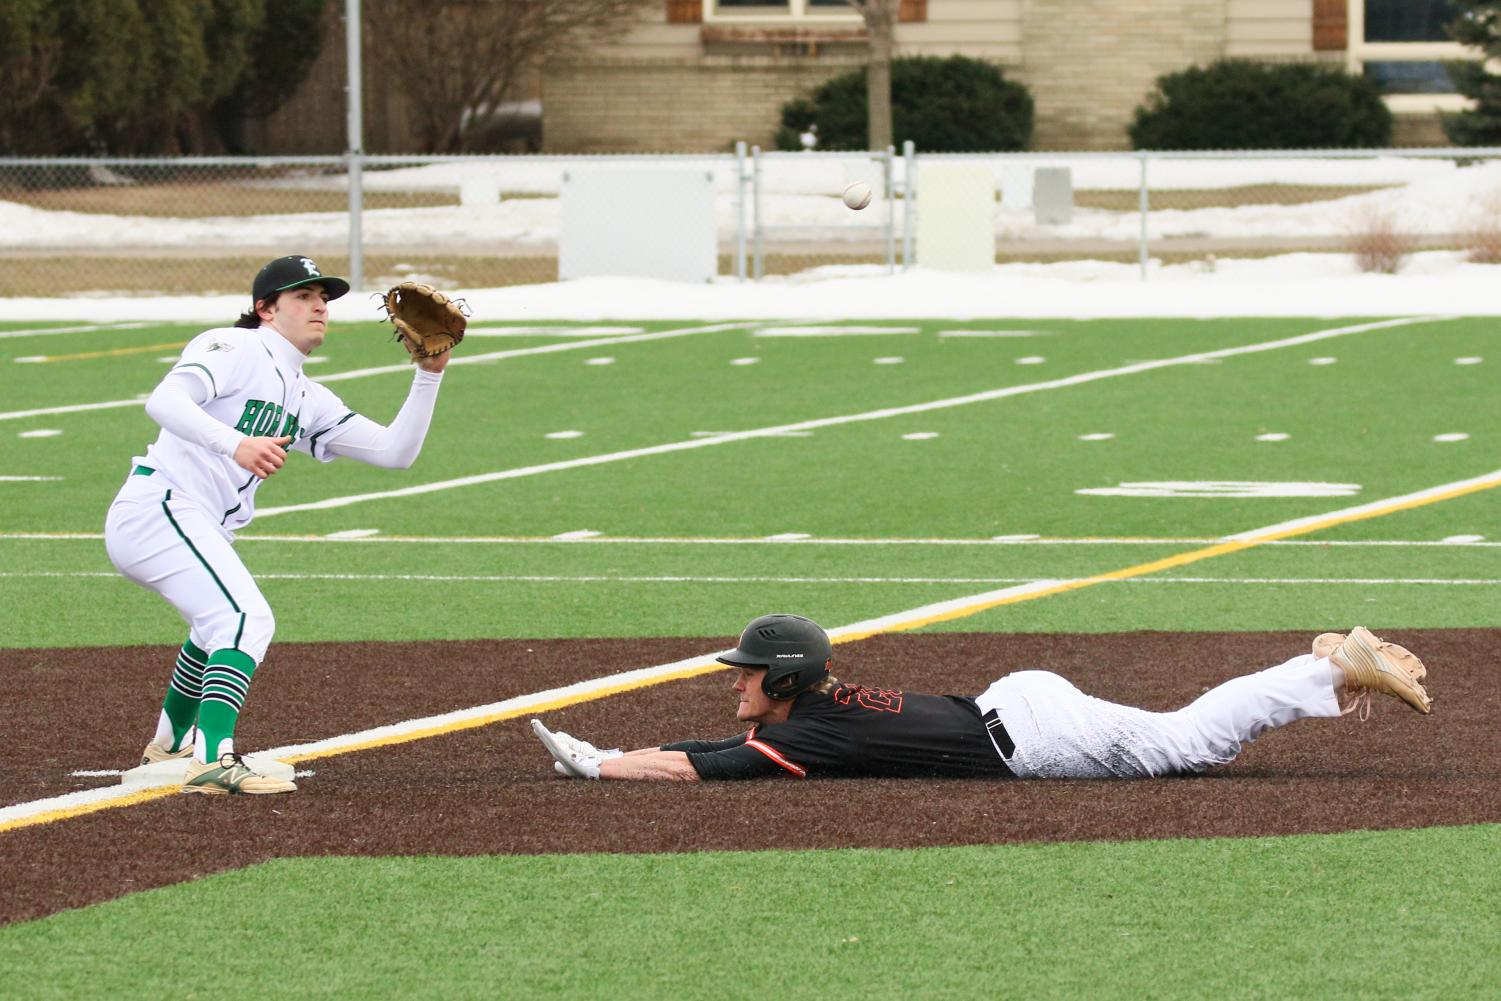 Senior captain Riley Dvorak slides into second base during Park's first regular season game against Edina. Park scored the first run of the game, but lost 3-1.